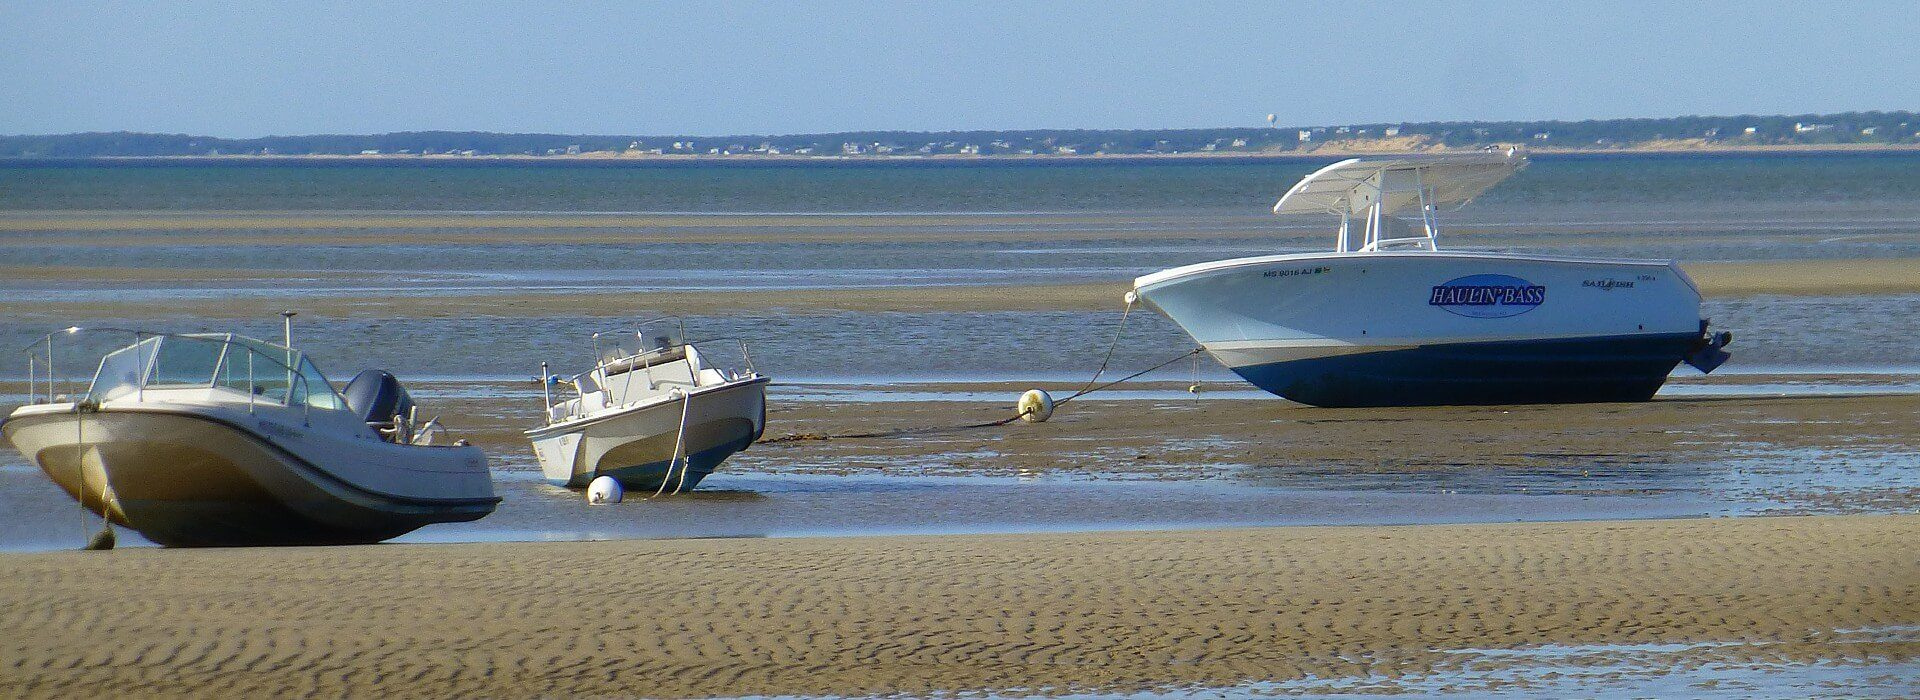 Three boats moored on the beach at waters edge with tide gone out and blue skies overhead